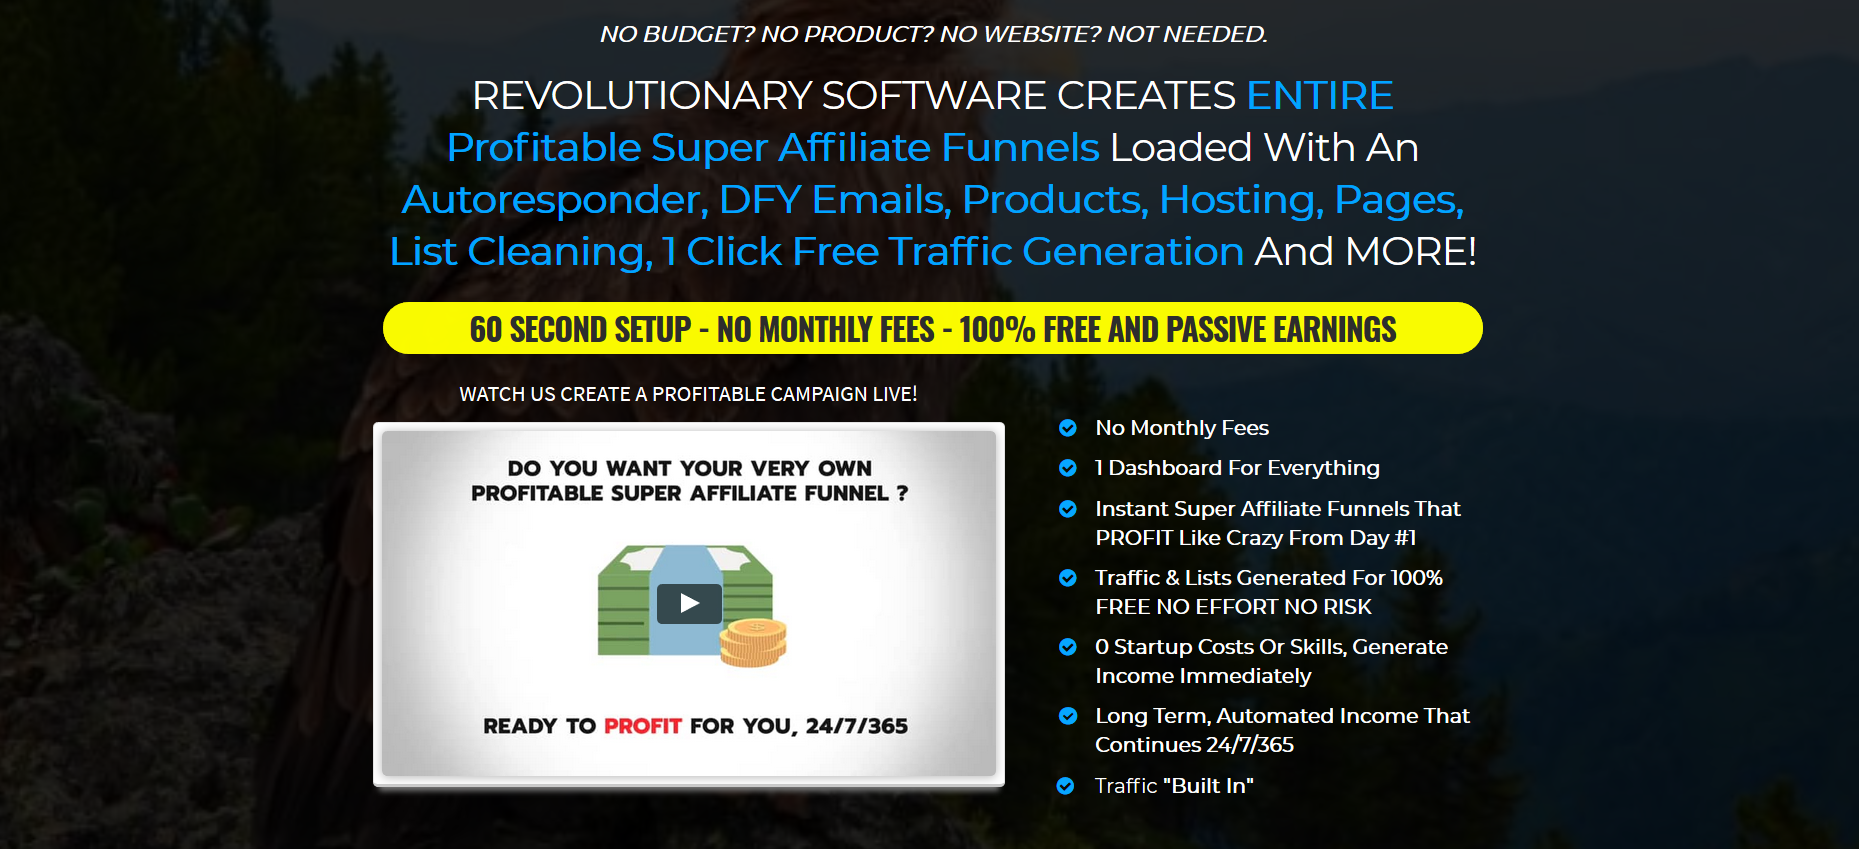 No BUDget? no product? no website? not needed. REVOLUTIONARY SOFTWARE CREATES ENTIRE Profitable Super Affiliate Funnels Loaded With An Autoresponder, DFY Emails, Products, Hosting, Pages, List Cleaning, 1 Click Free Traffic Generation And MORE! 60 SECOND SETUP - NO MONTHLY FEES - 100% FREE AND PASSIVE EARNINGS Go here and see Profiteagle in action, and get your copy ASAP